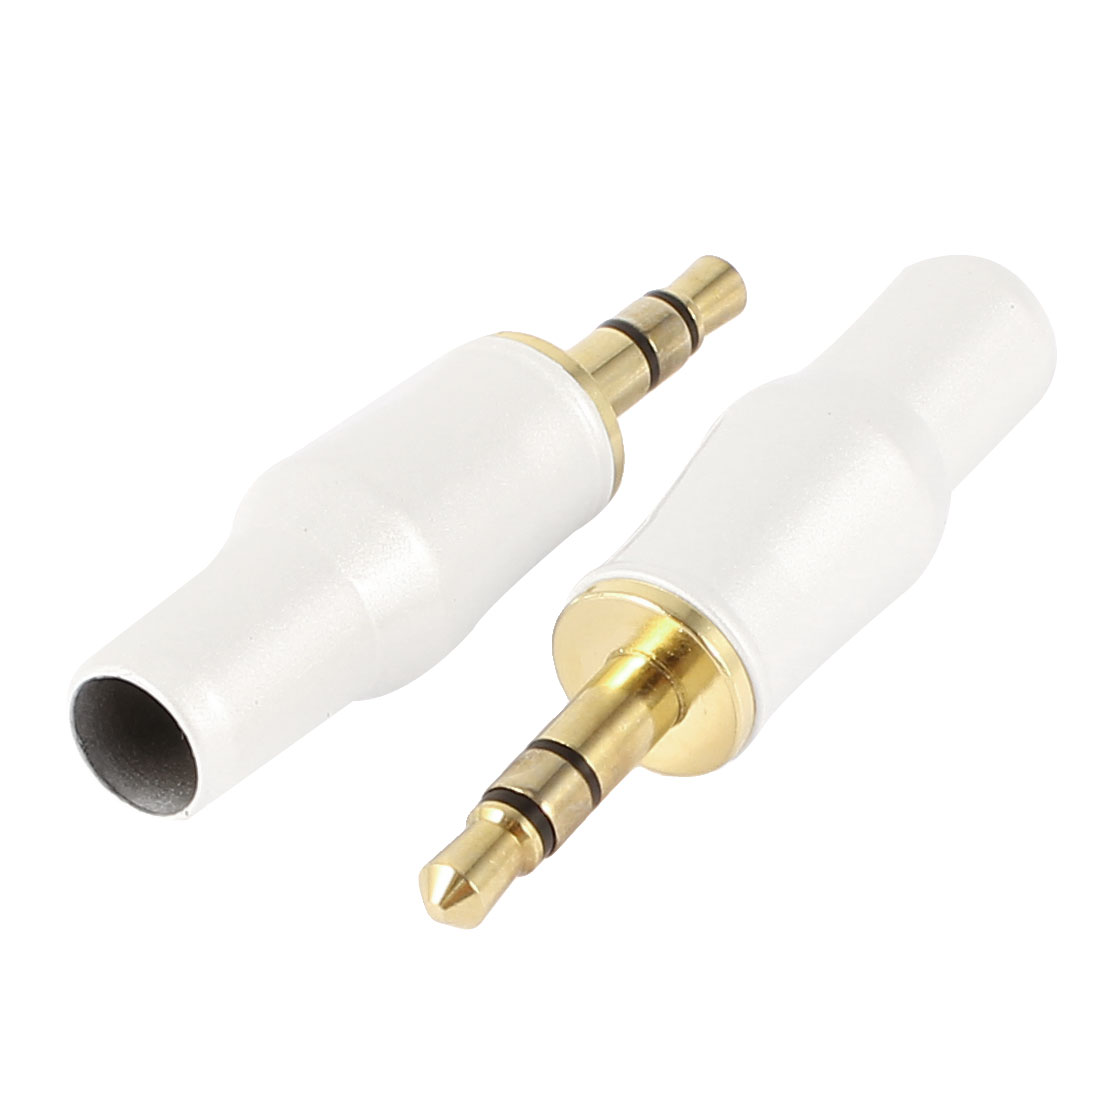 Gold Tone White 3.5mm Stereo Audio Connector Soldering Adapter 2 Pcs